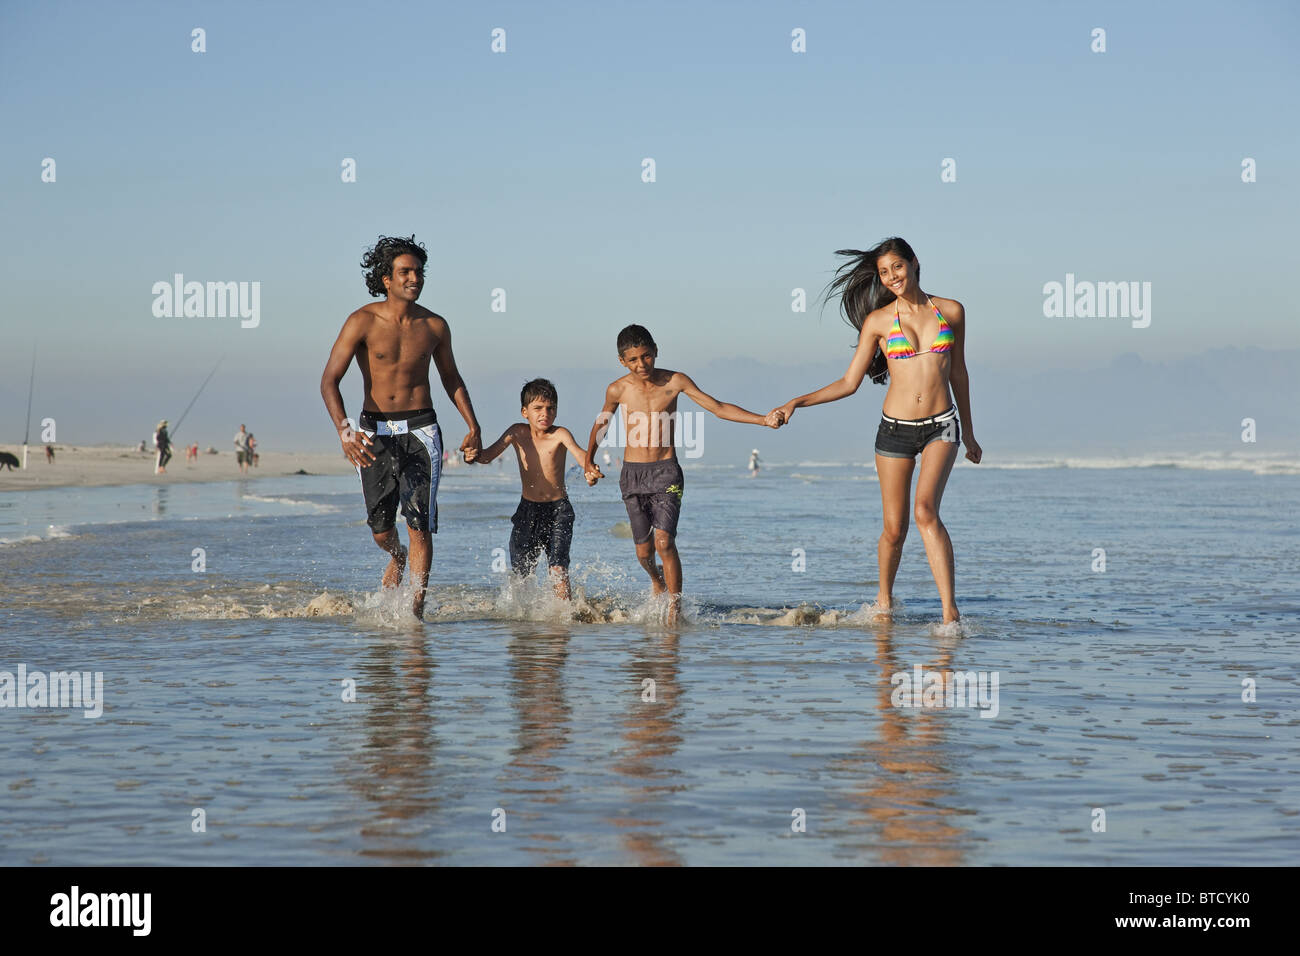 Indian family, dressed in swim wear, playing in shallow waves. - Stock Image